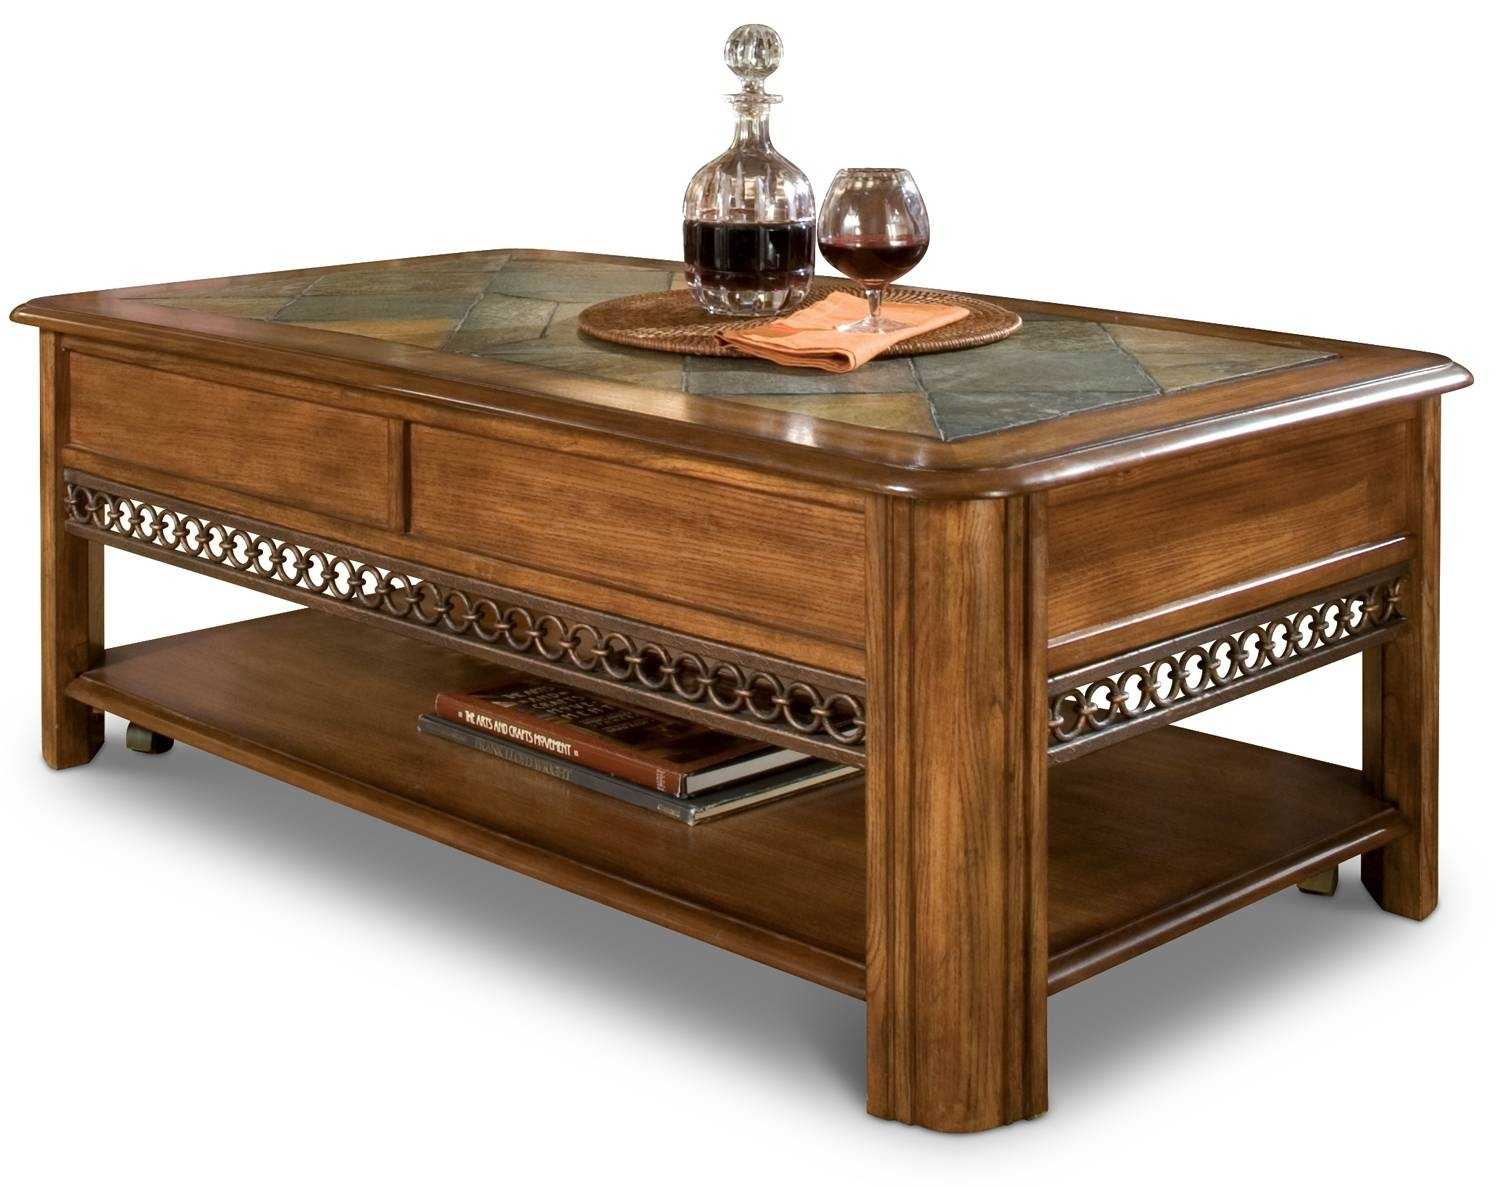 Madison Coffee Table And Two End Tables - Nutmeg | Leon's intended for Madison Coffee Tables (Image 23 of 30)